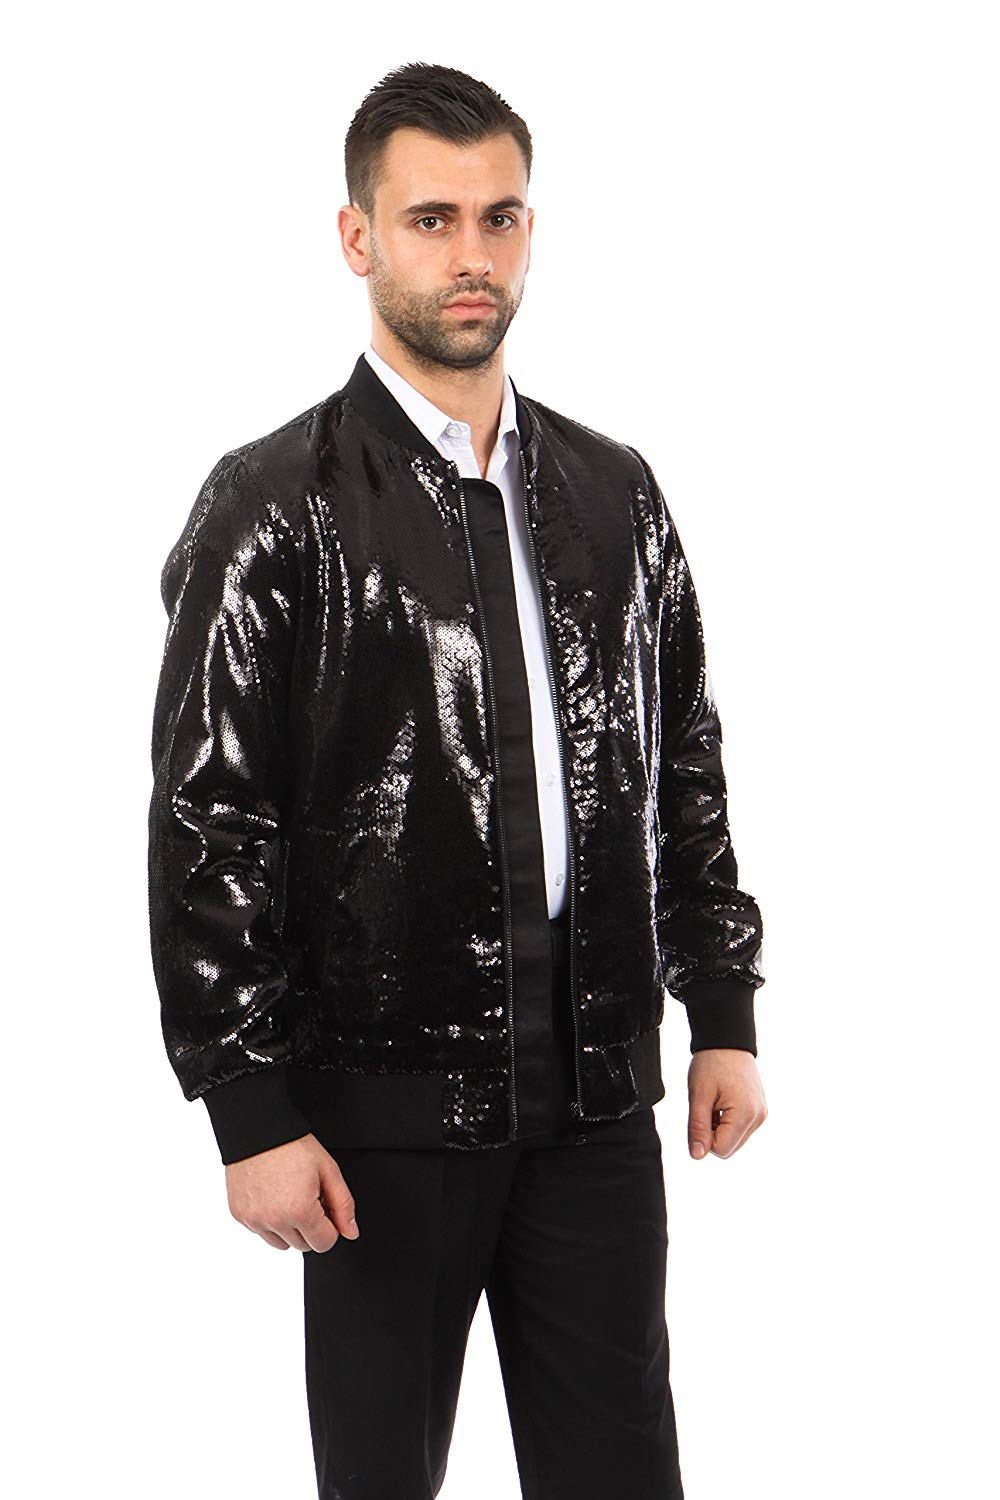 TAZIO Mens Jacket Slim Fit Sequin Pattern Blazer Bomber Jacket